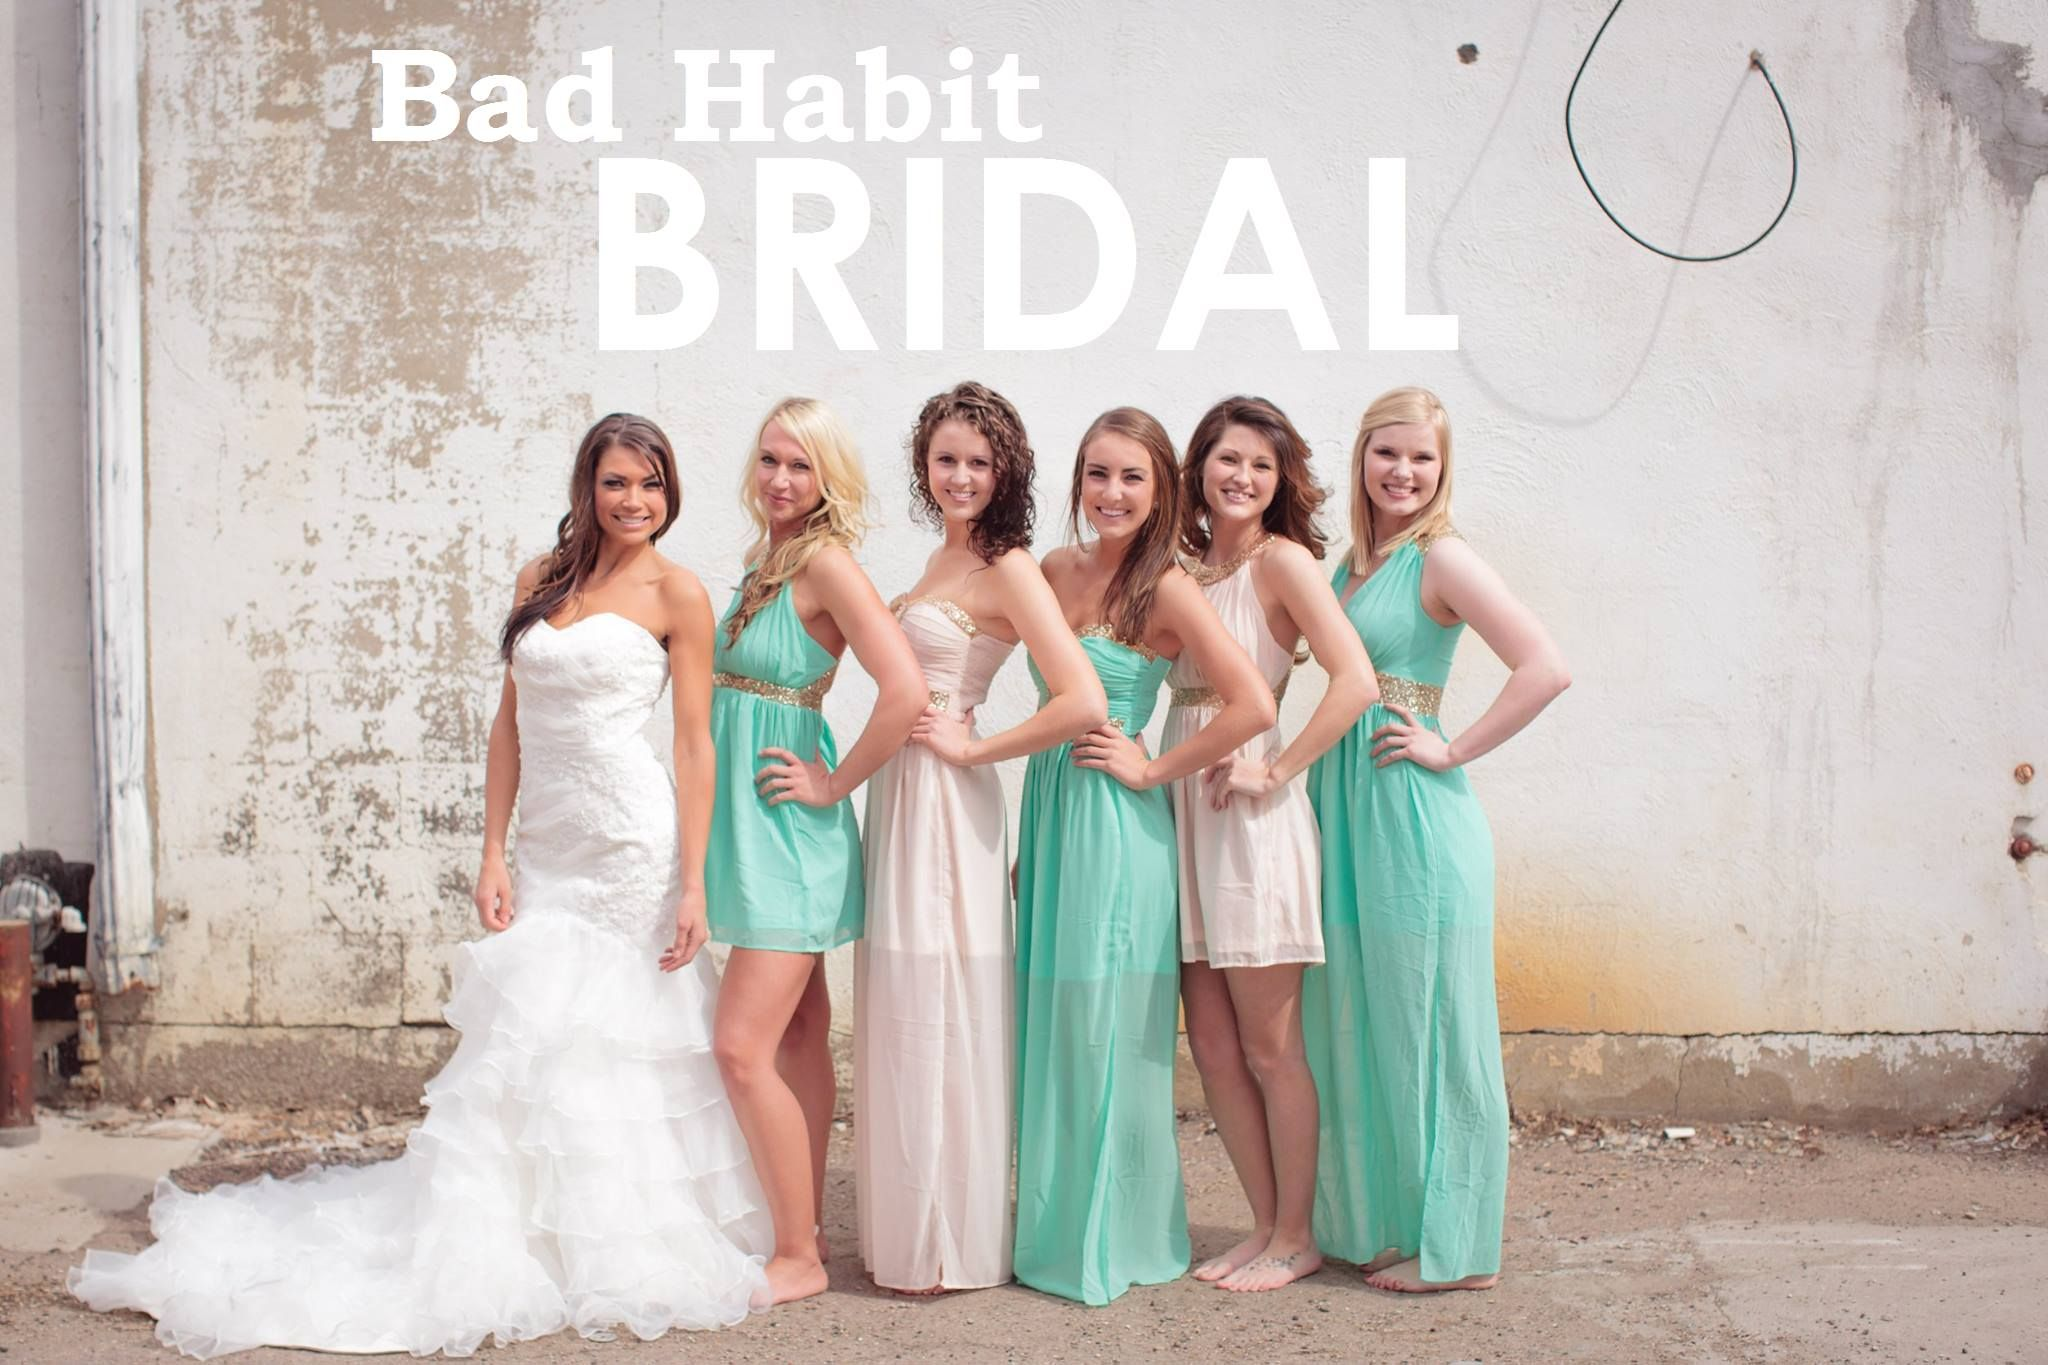 Do You Have A Wedding Coming Up Soon Bad Habit Boutique Has Fun Dresses That Could Your Bridesmaids Wear Can Different Lengths And